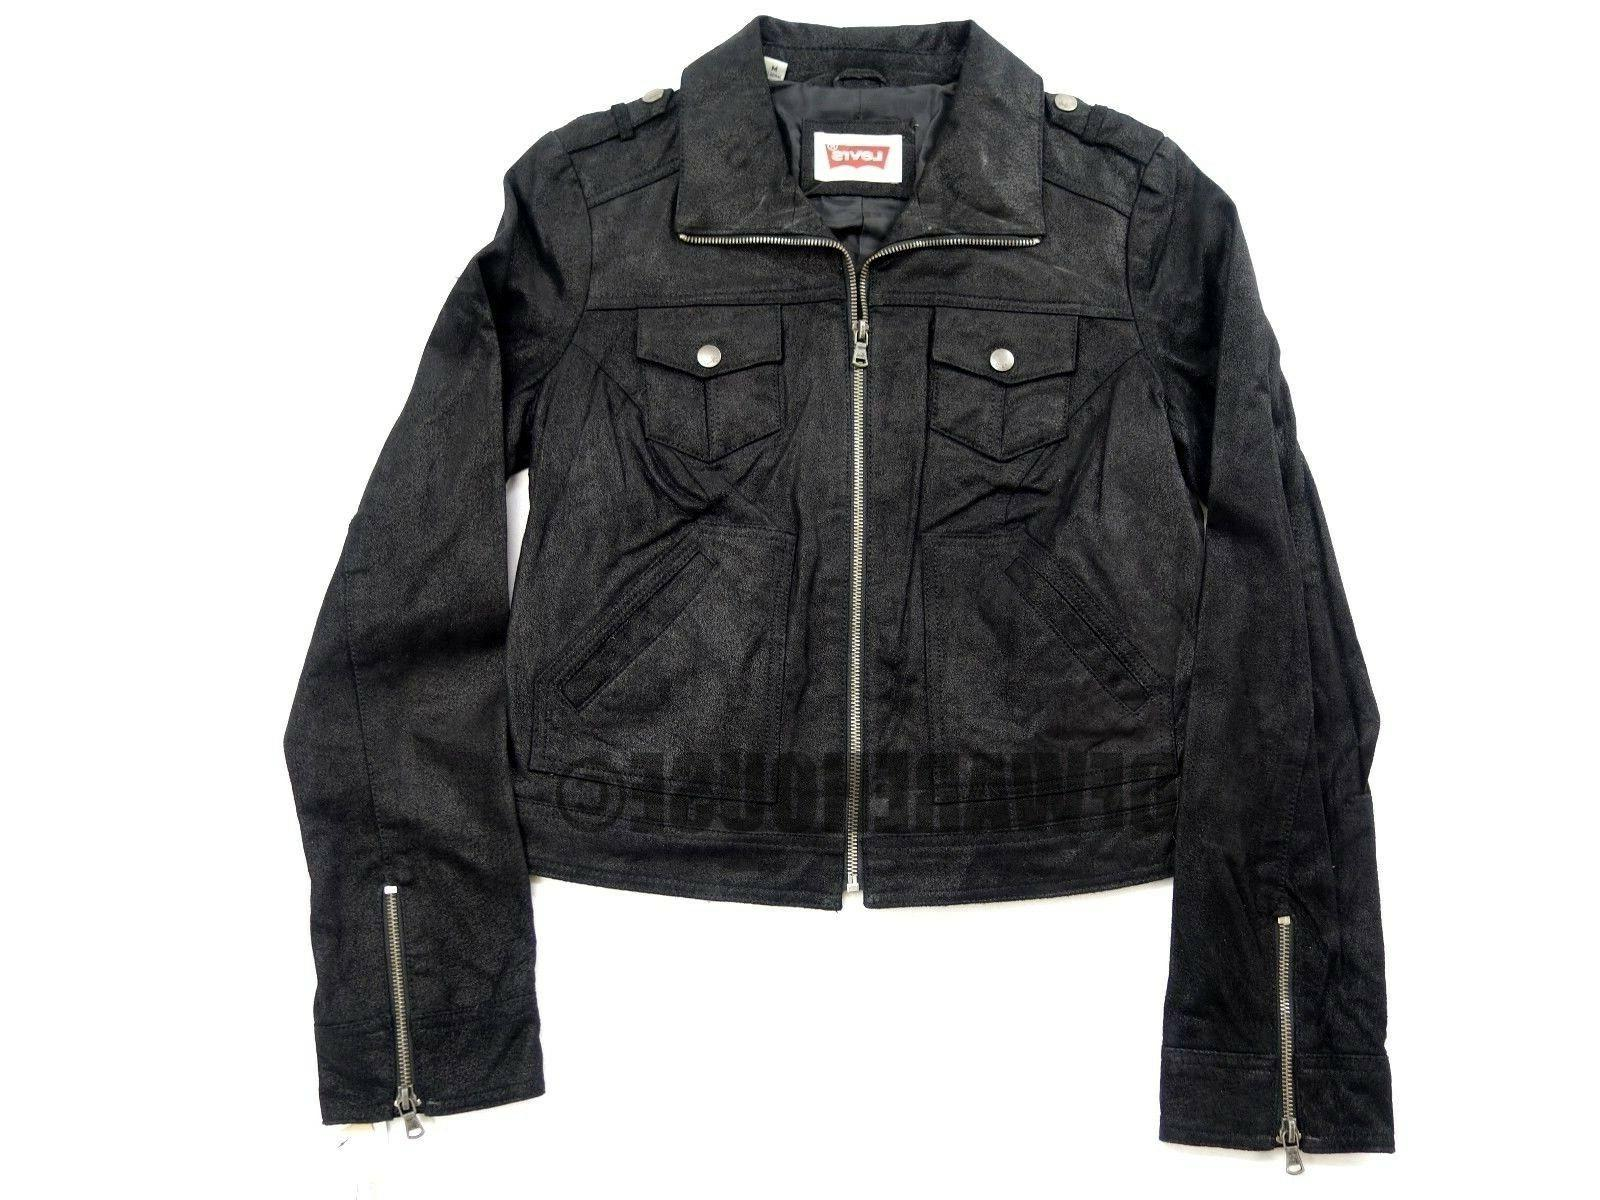 New Levi's Women's Motorcycle Cropped Leather Jacket Petite